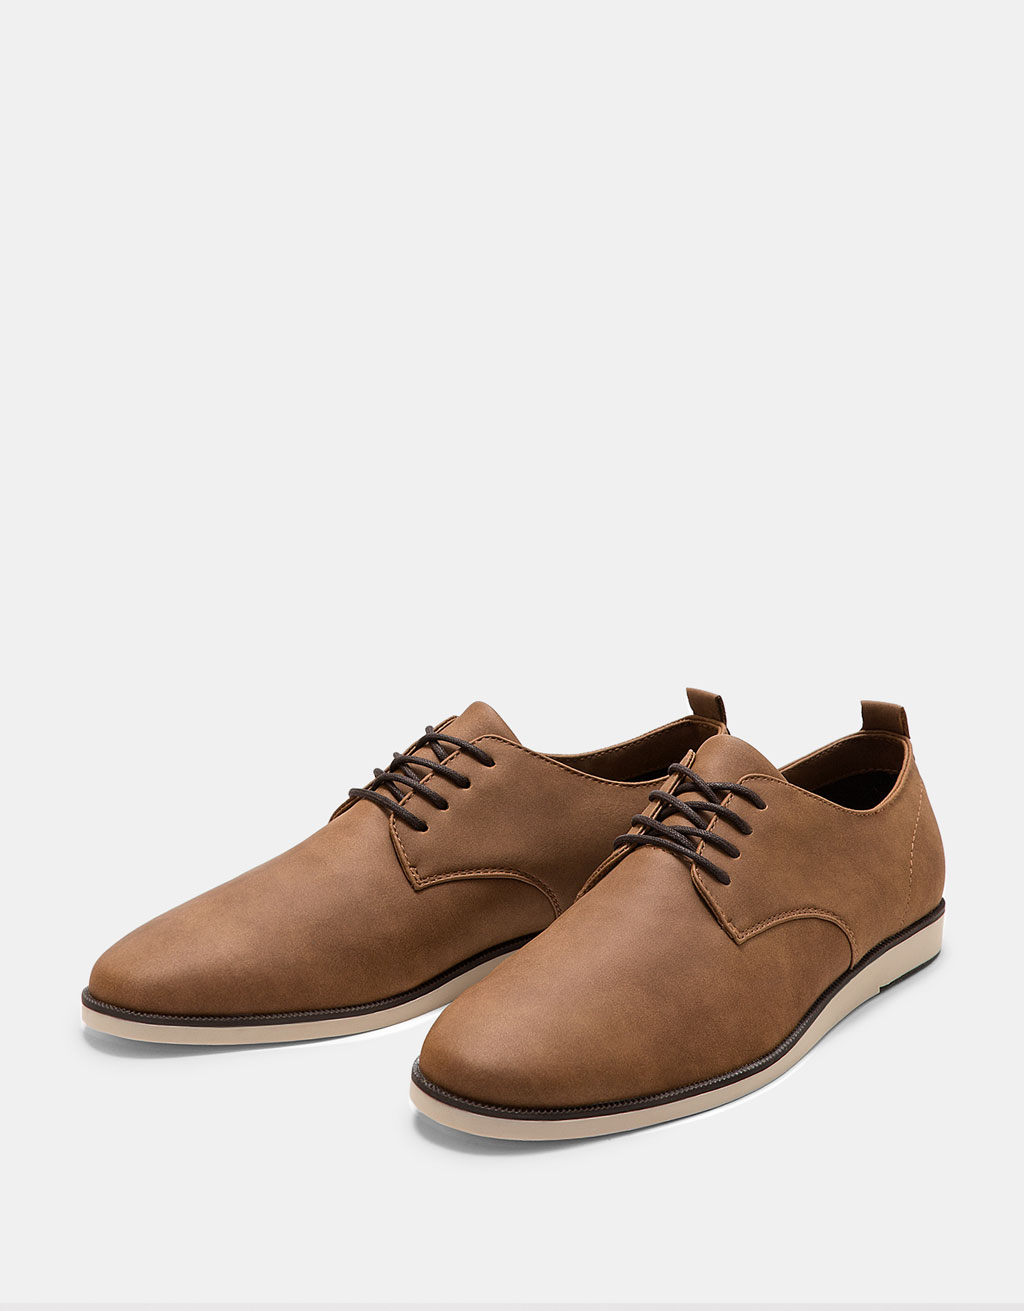 Men's dress shoes with contrasting soles